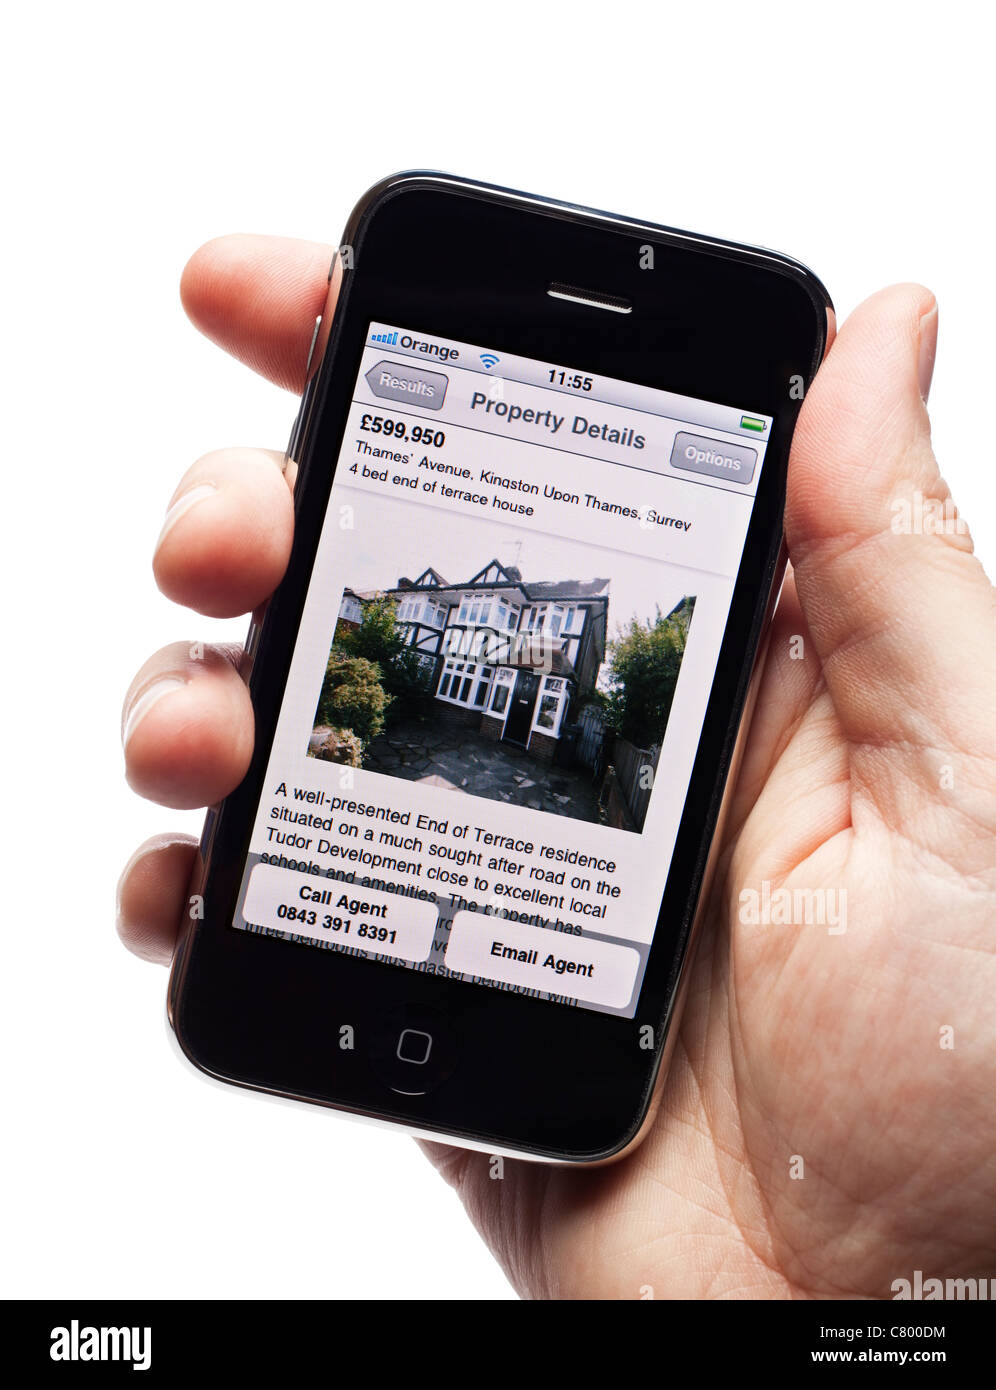 House for sale - Hand holding iPhone smartphone smart phone mobile phone showing property details on the Rightmove - Stock Image